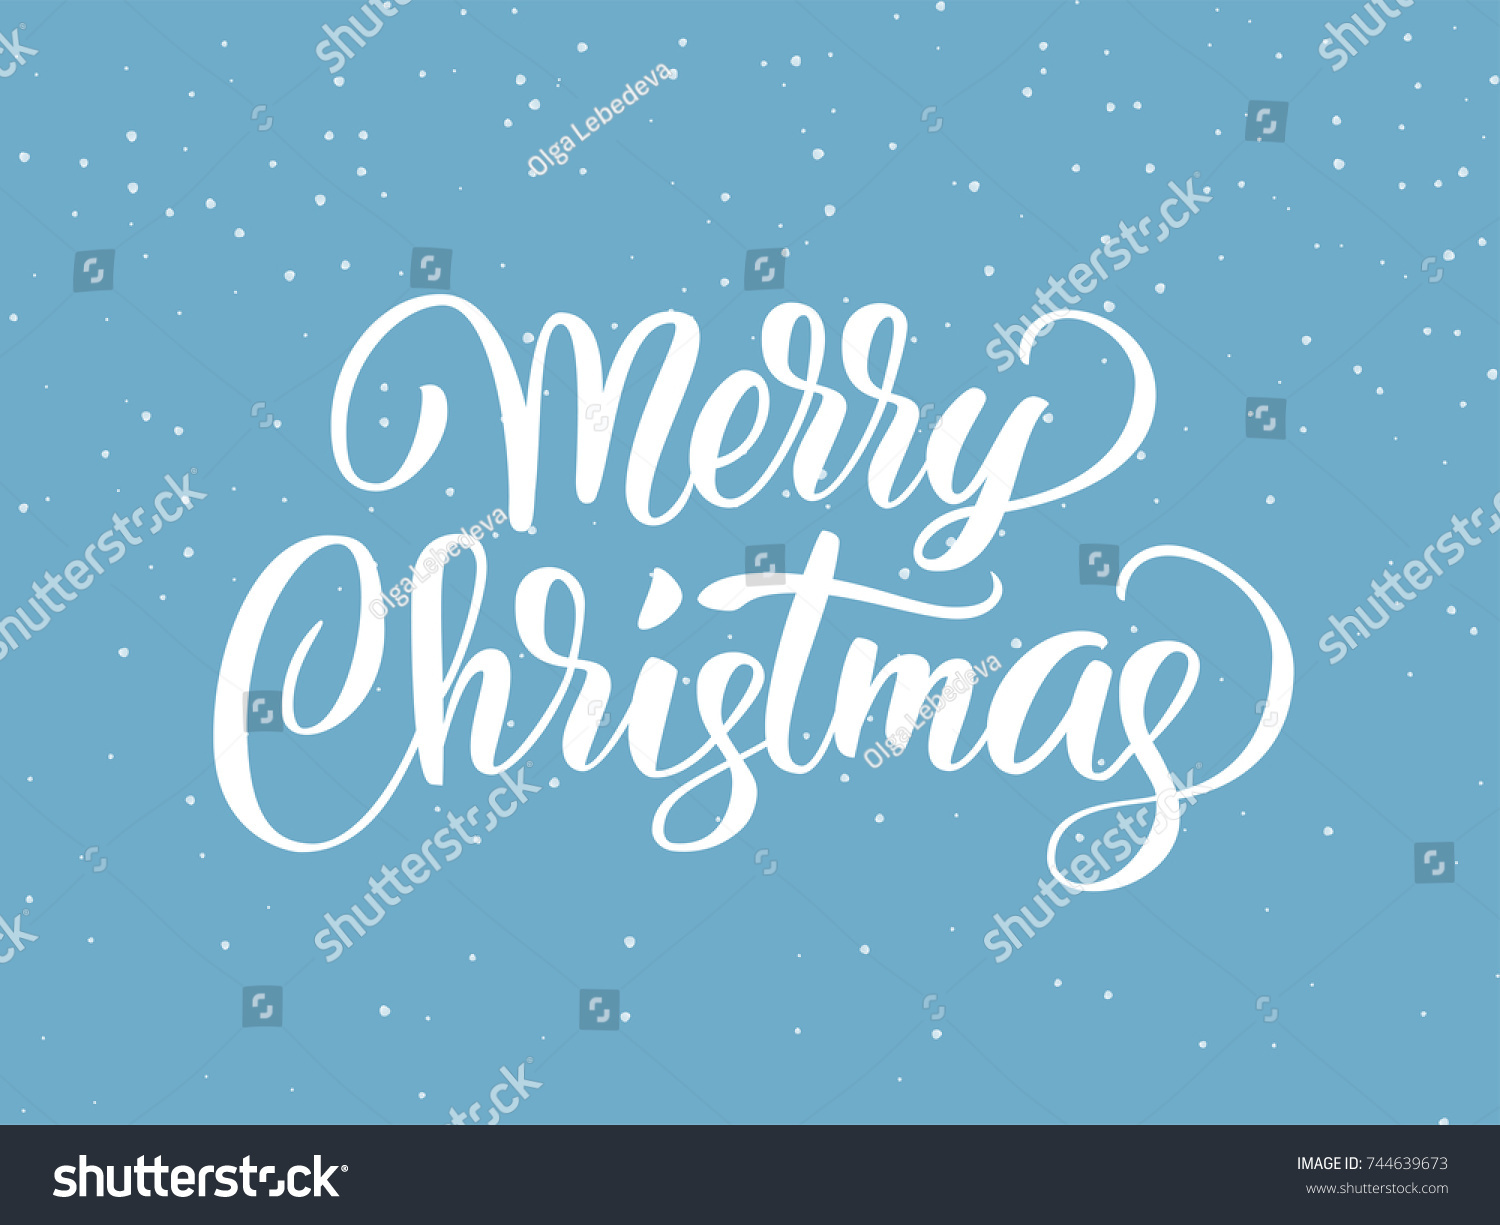 Merry christmas hand drawn lettering holiday stock vector royalty merry christmas hand drawn lettering holiday greetings quote blue flat background with falling snow m4hsunfo